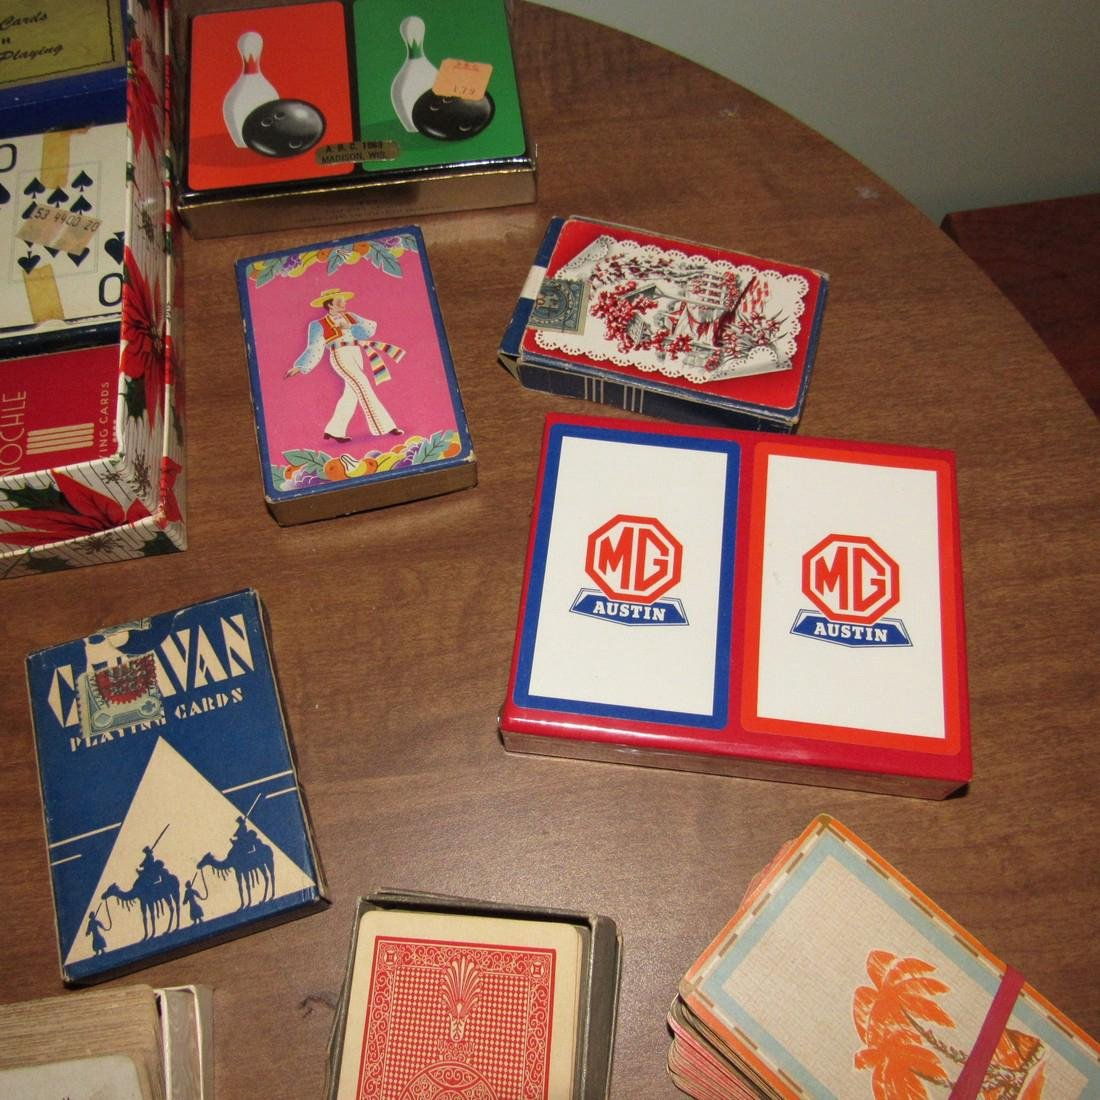 Large Lot of Playing Cards incl. MG Austin - 4